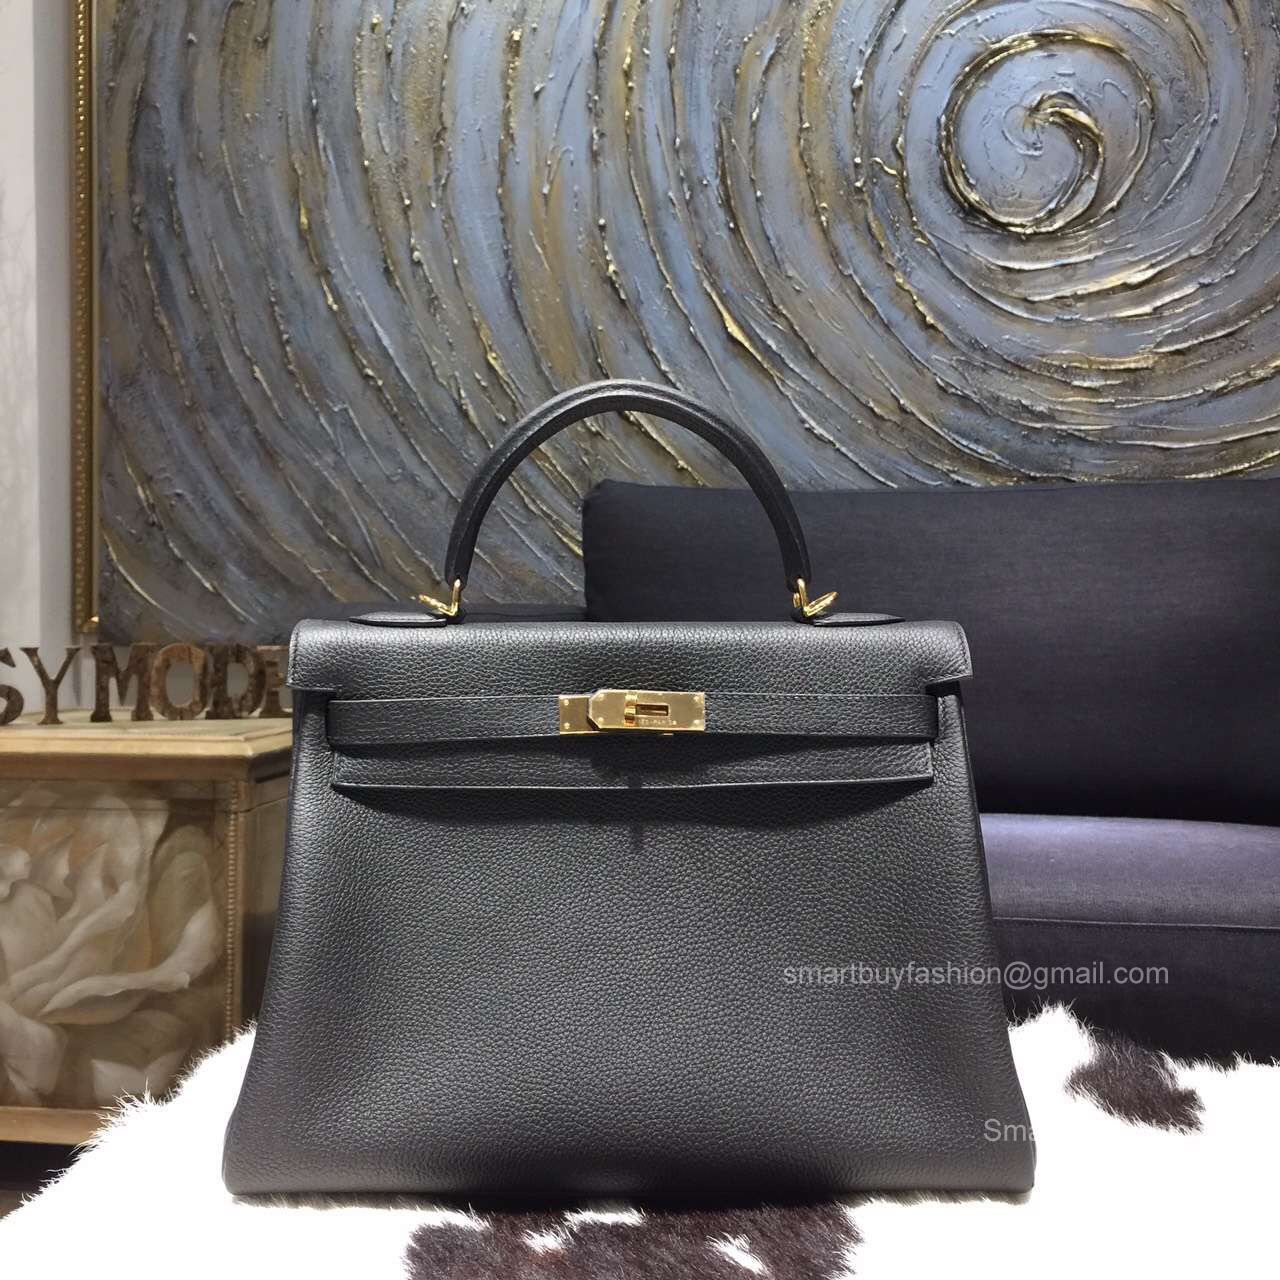 0680a5f17c39 Hermes Kelly 28 Bag Black Togo Leather Handstitched Gold hw -